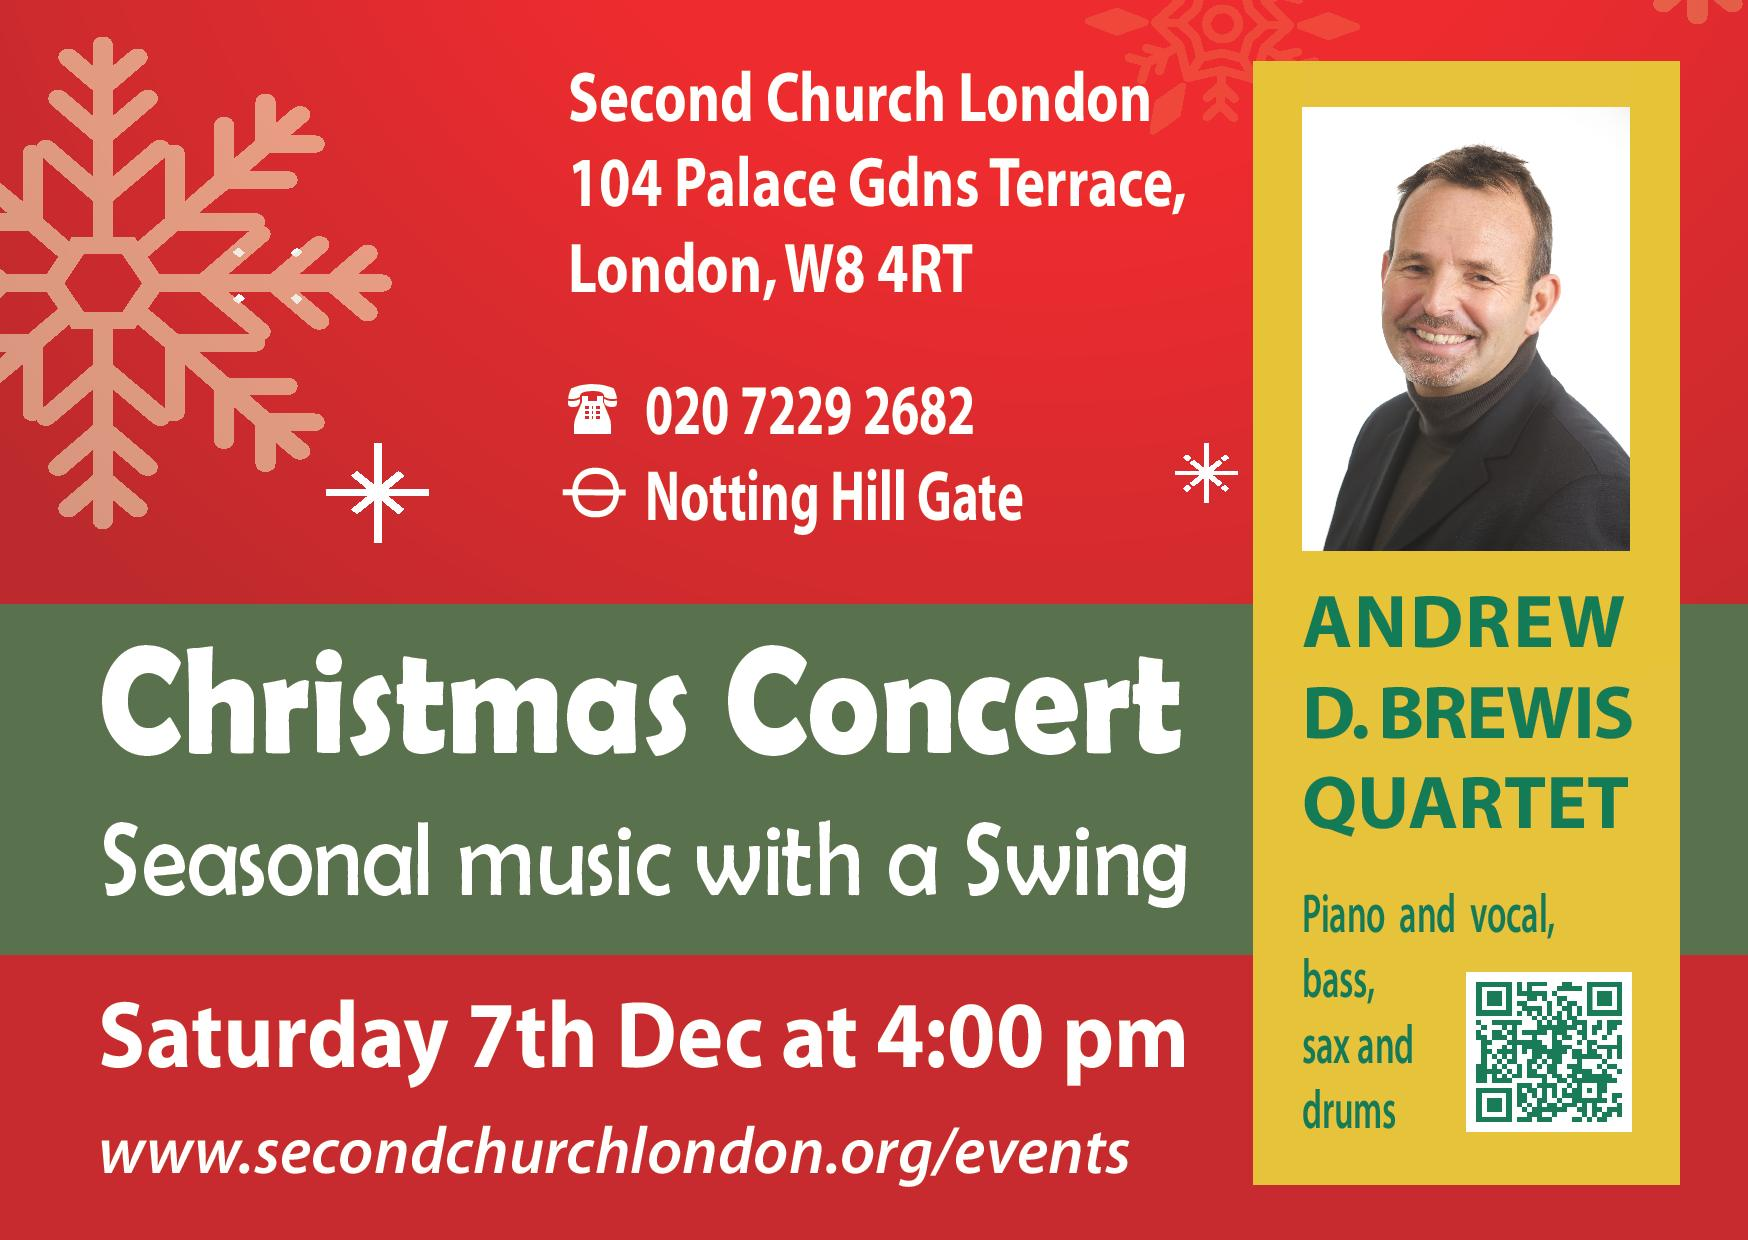 Christmas Concert on Saturday 7th December